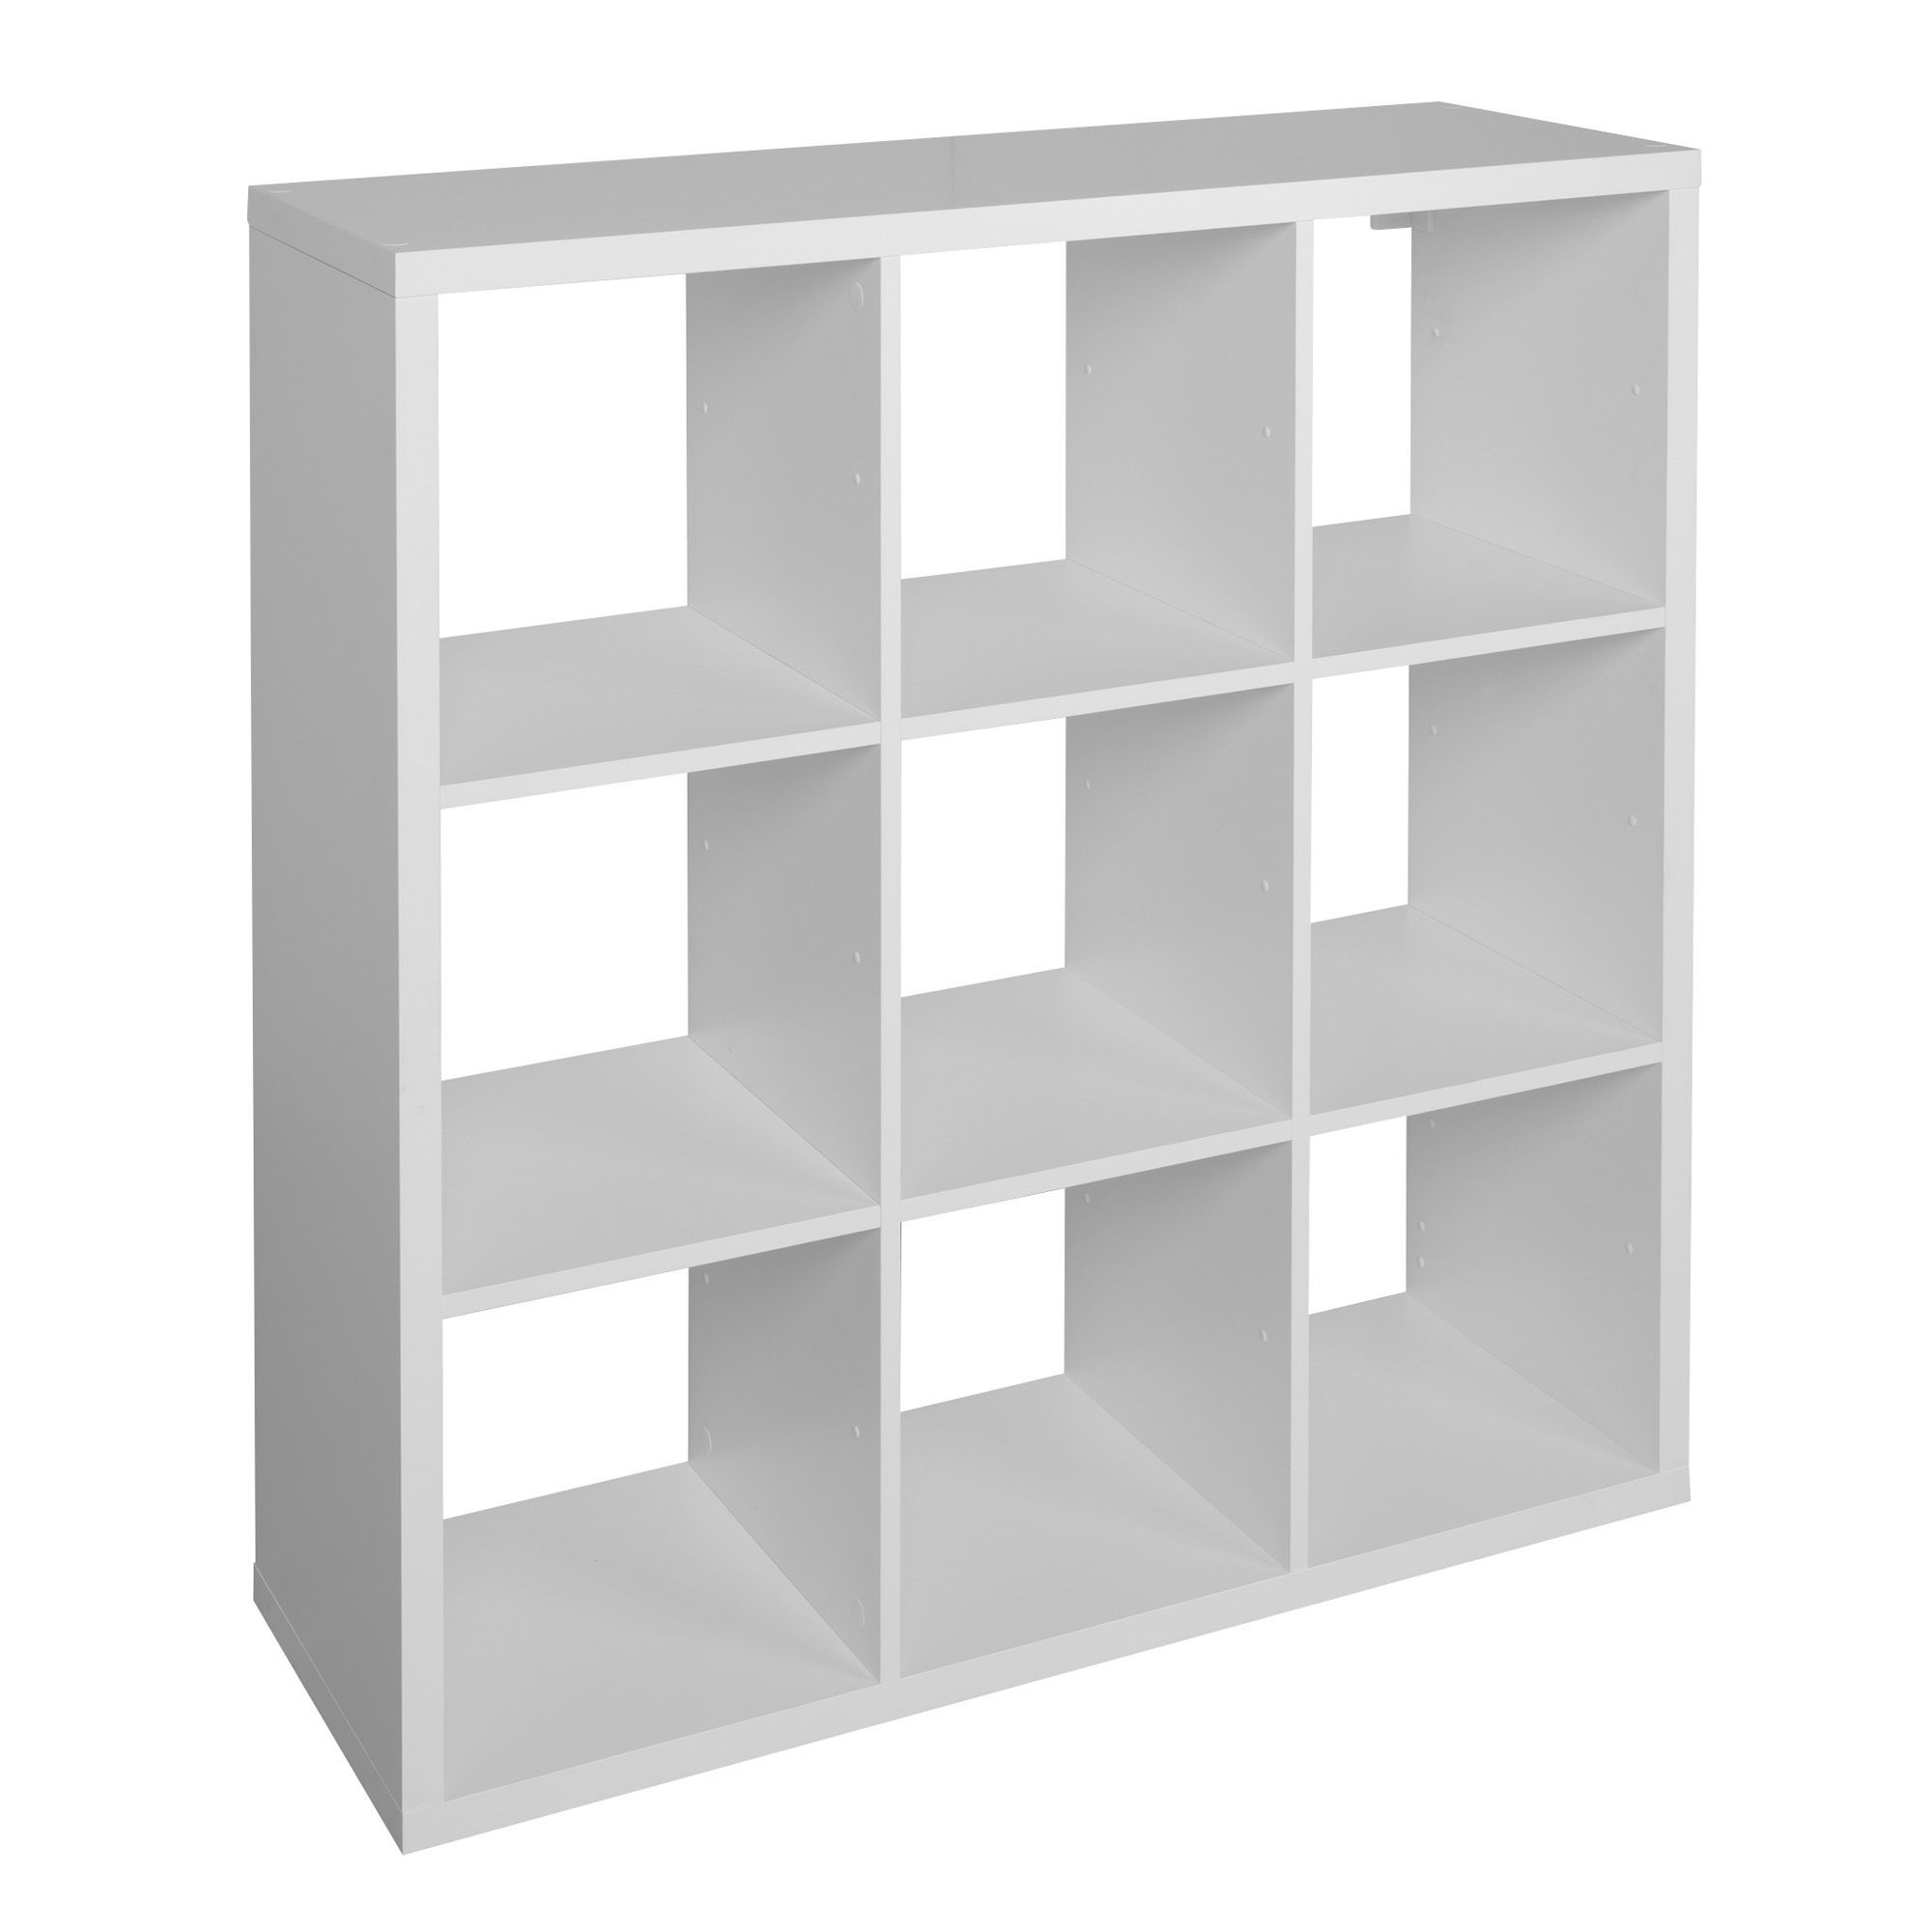 cubes cube black shelf modular unique wall furniture product white shelves in expand prev and